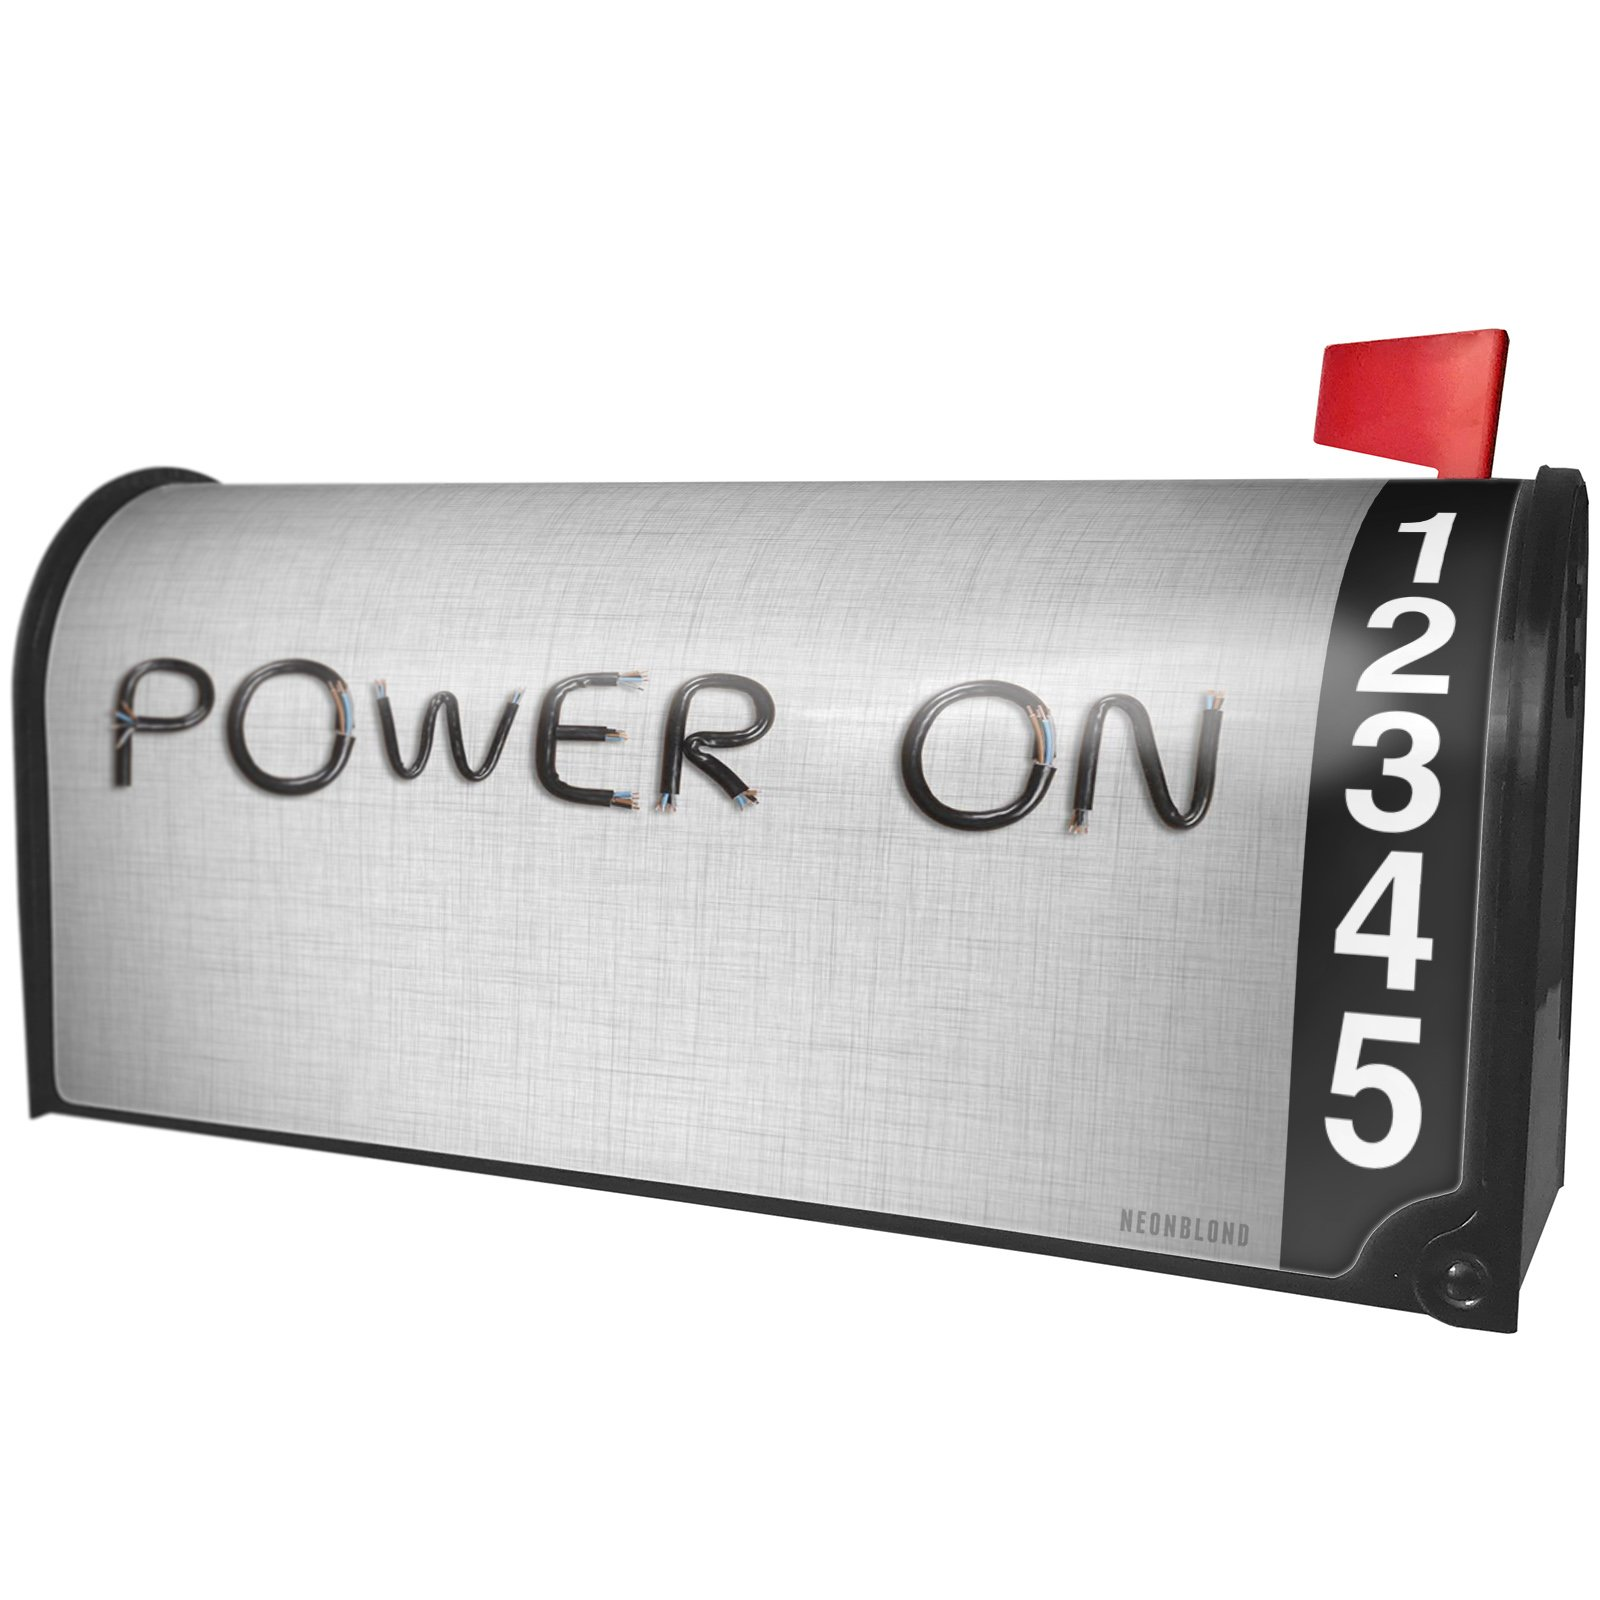 NEONBLOND Power On Electronics Wires and Cables Magnetic Mailbox Cover Custom Numbers